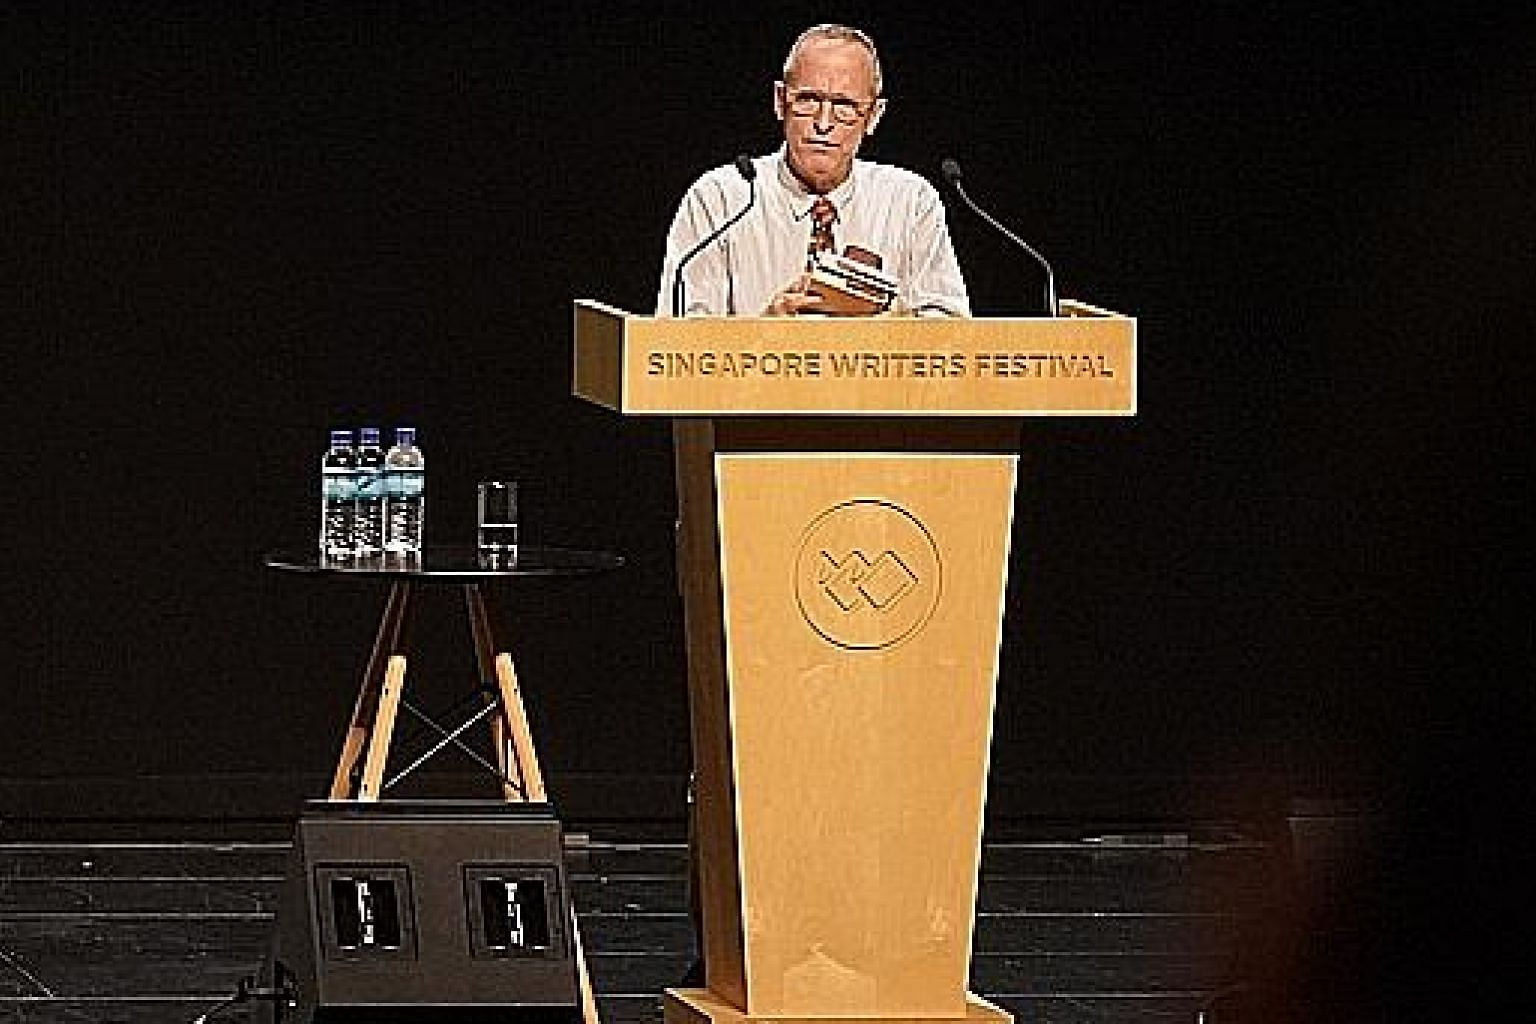 American essayist David Sedaris said that if he lost his voice, he might lose his will to write.